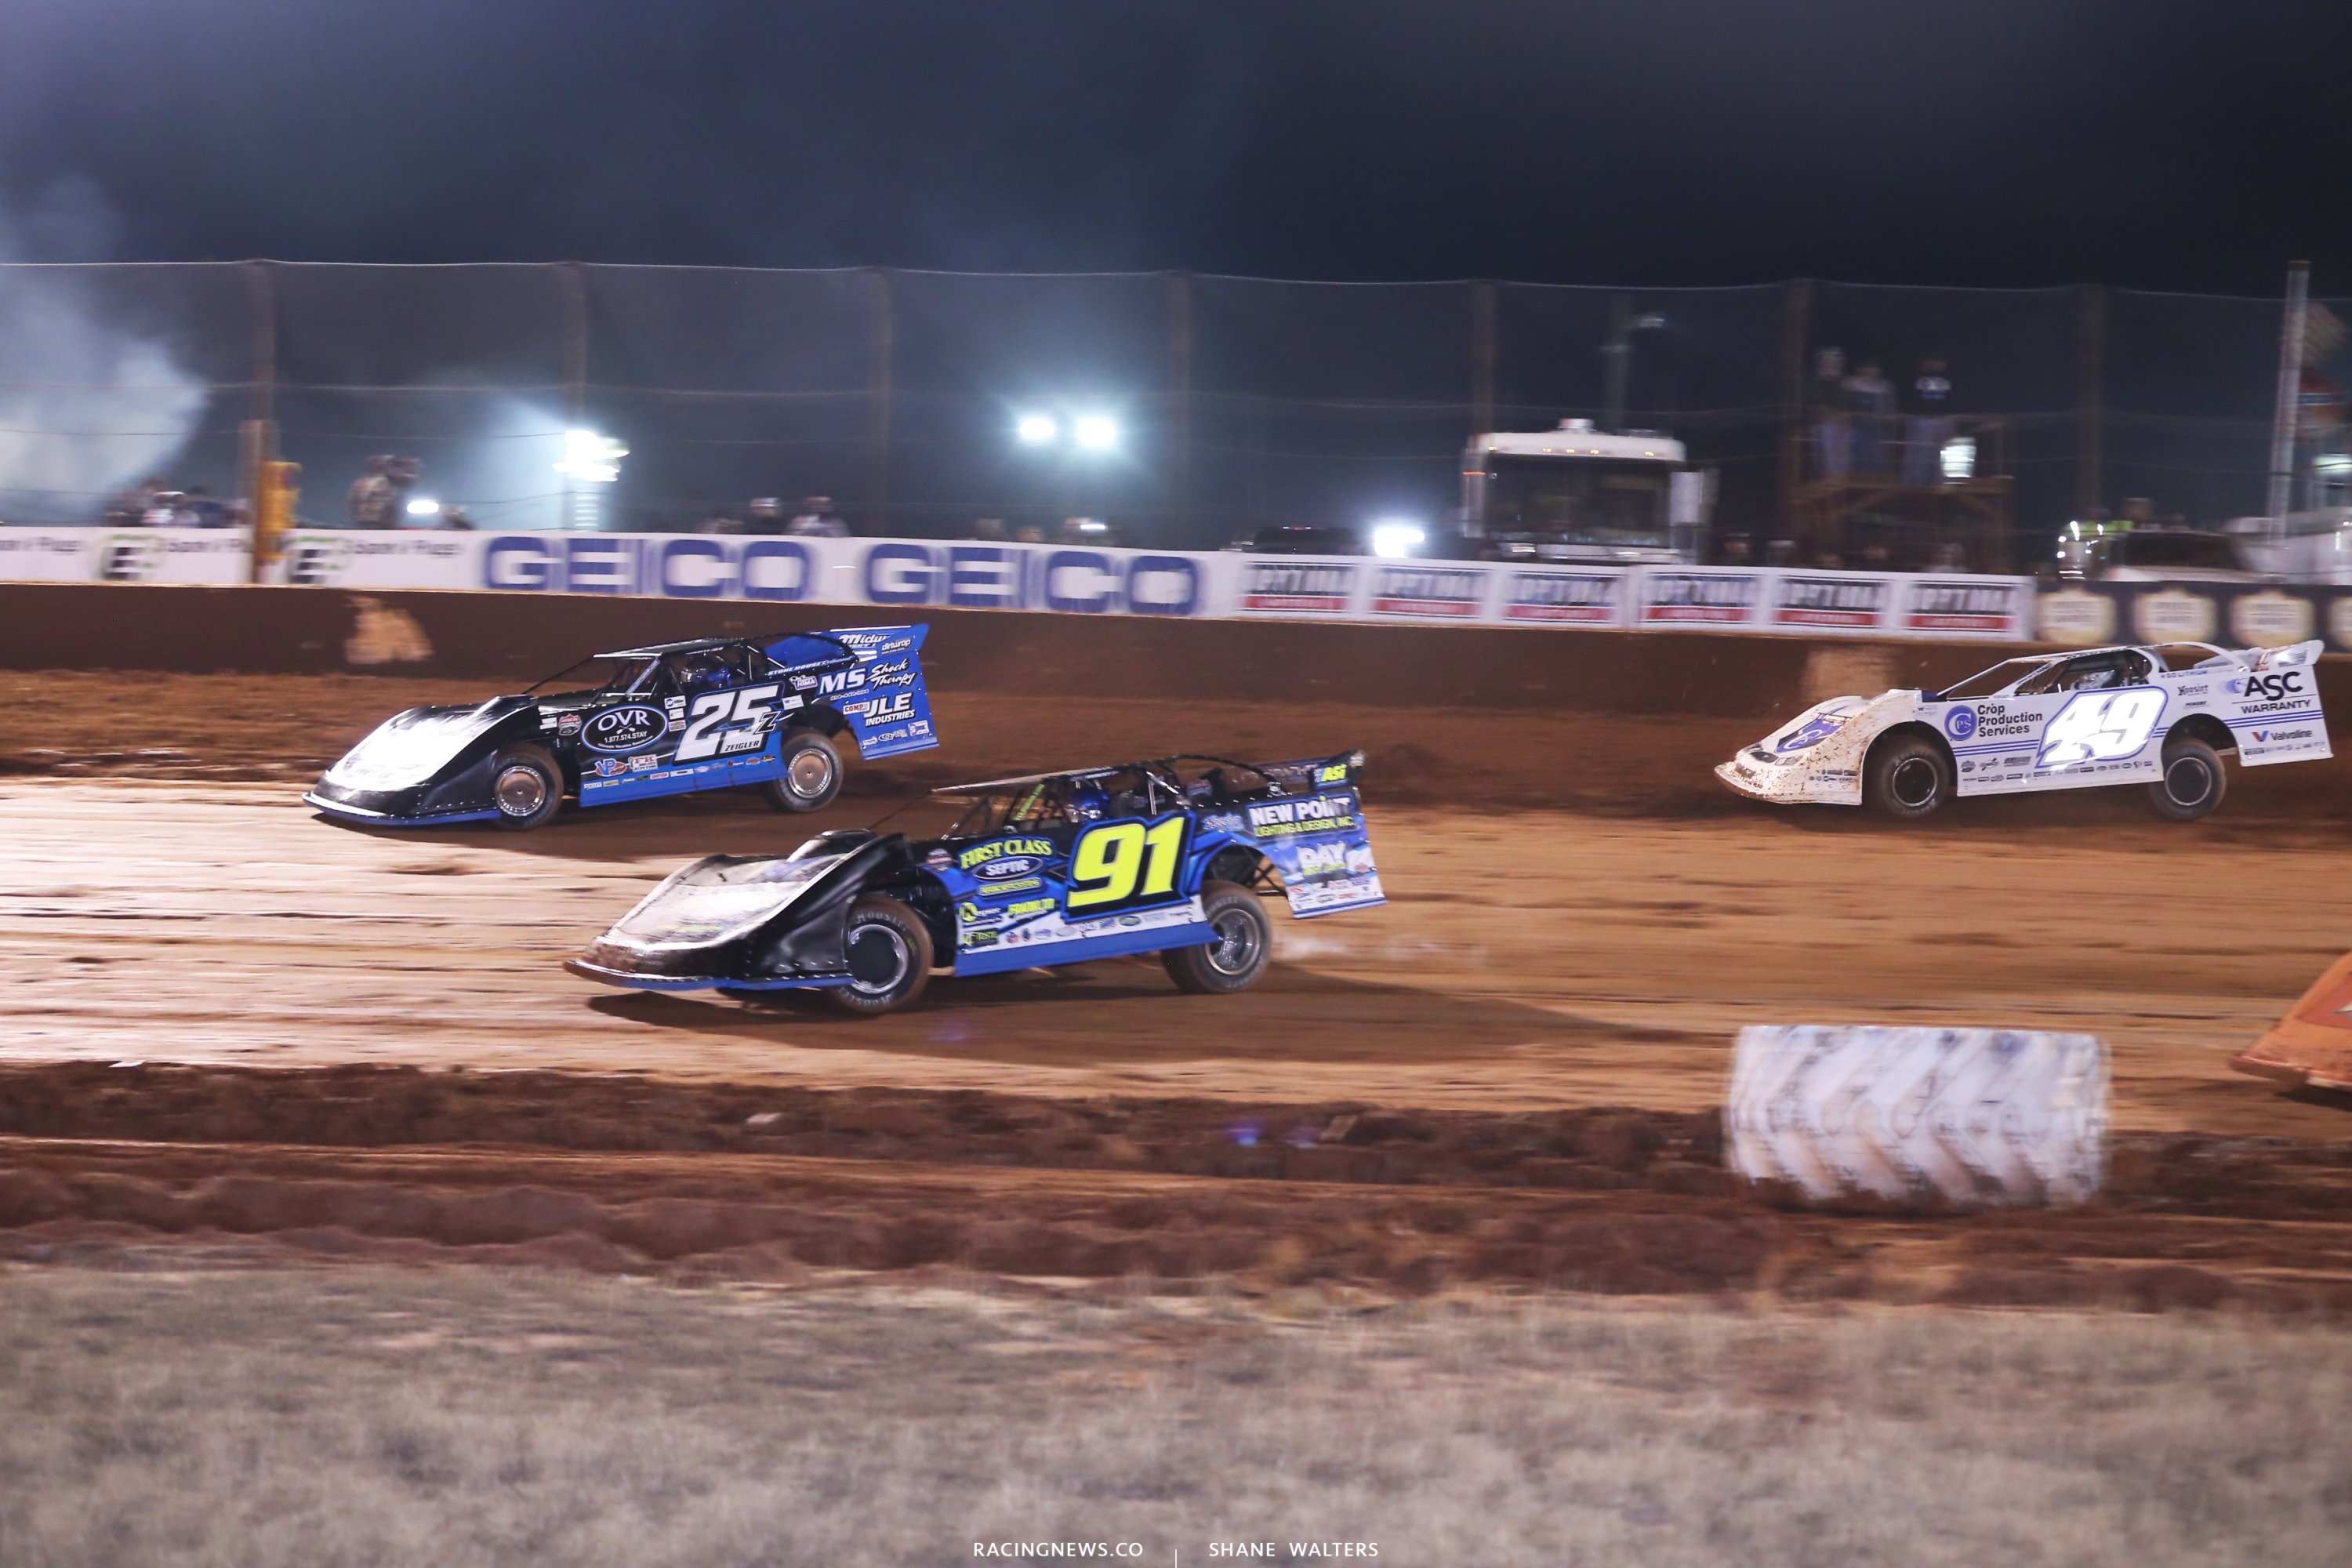 Mason Zeigler, Tyler Erb and Jonathan Davenport in turn 1 of the LOLMDS race 7339